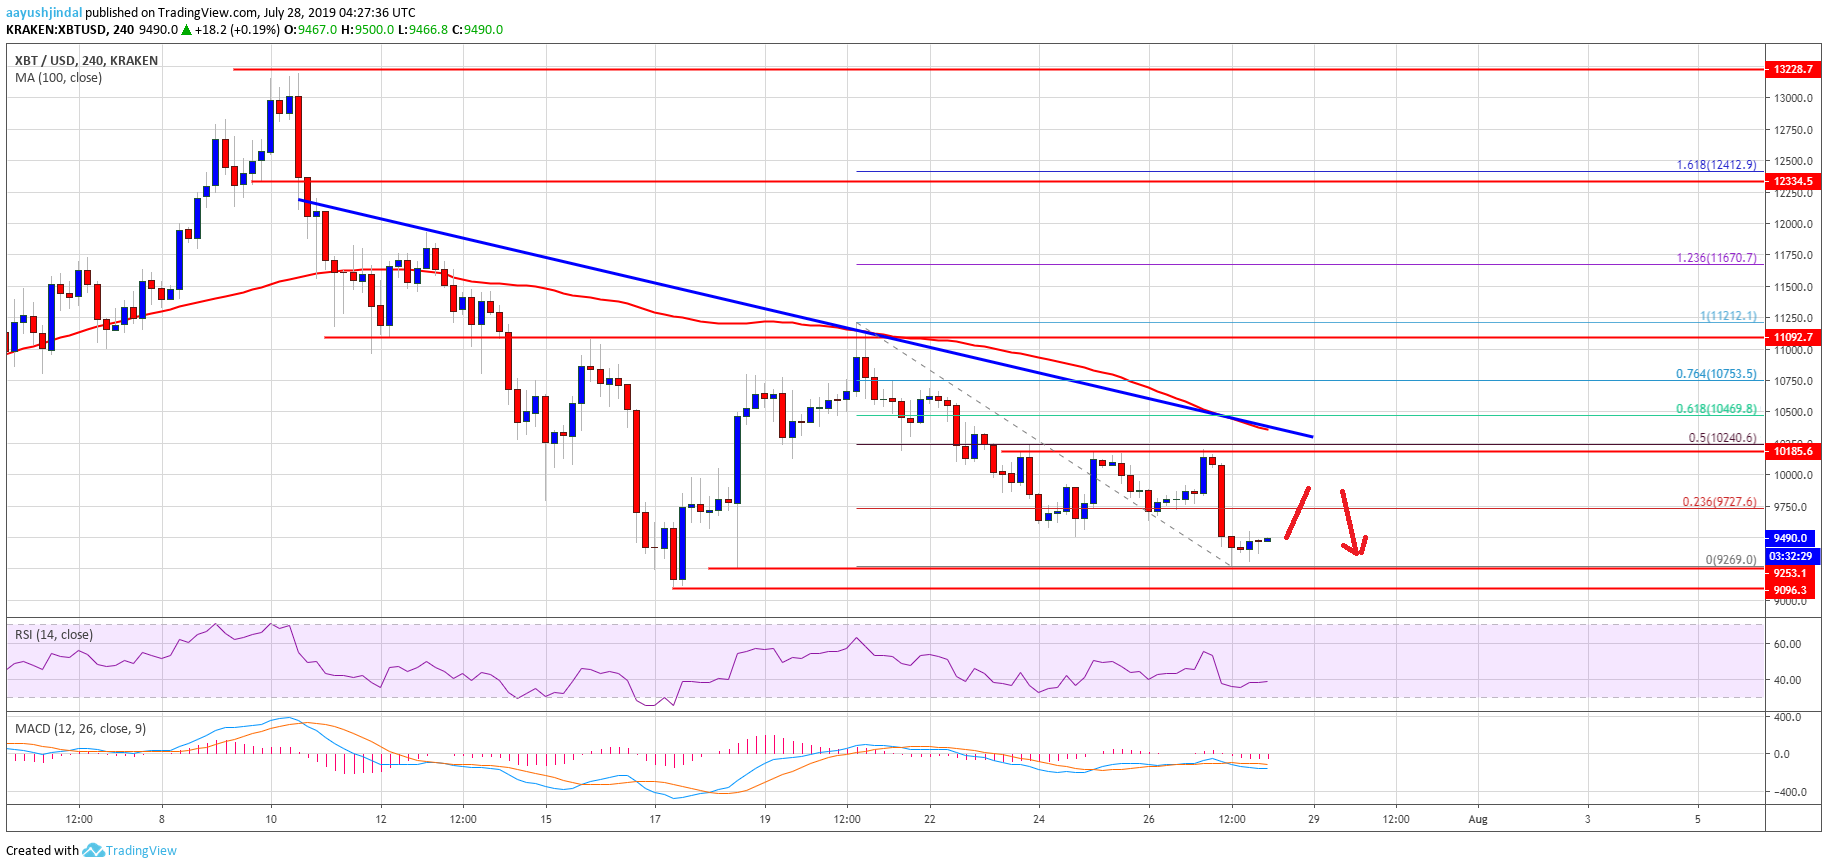 Bitcoin (BTC) Price Weekly Forecast: Risk Of Significant Downside Break